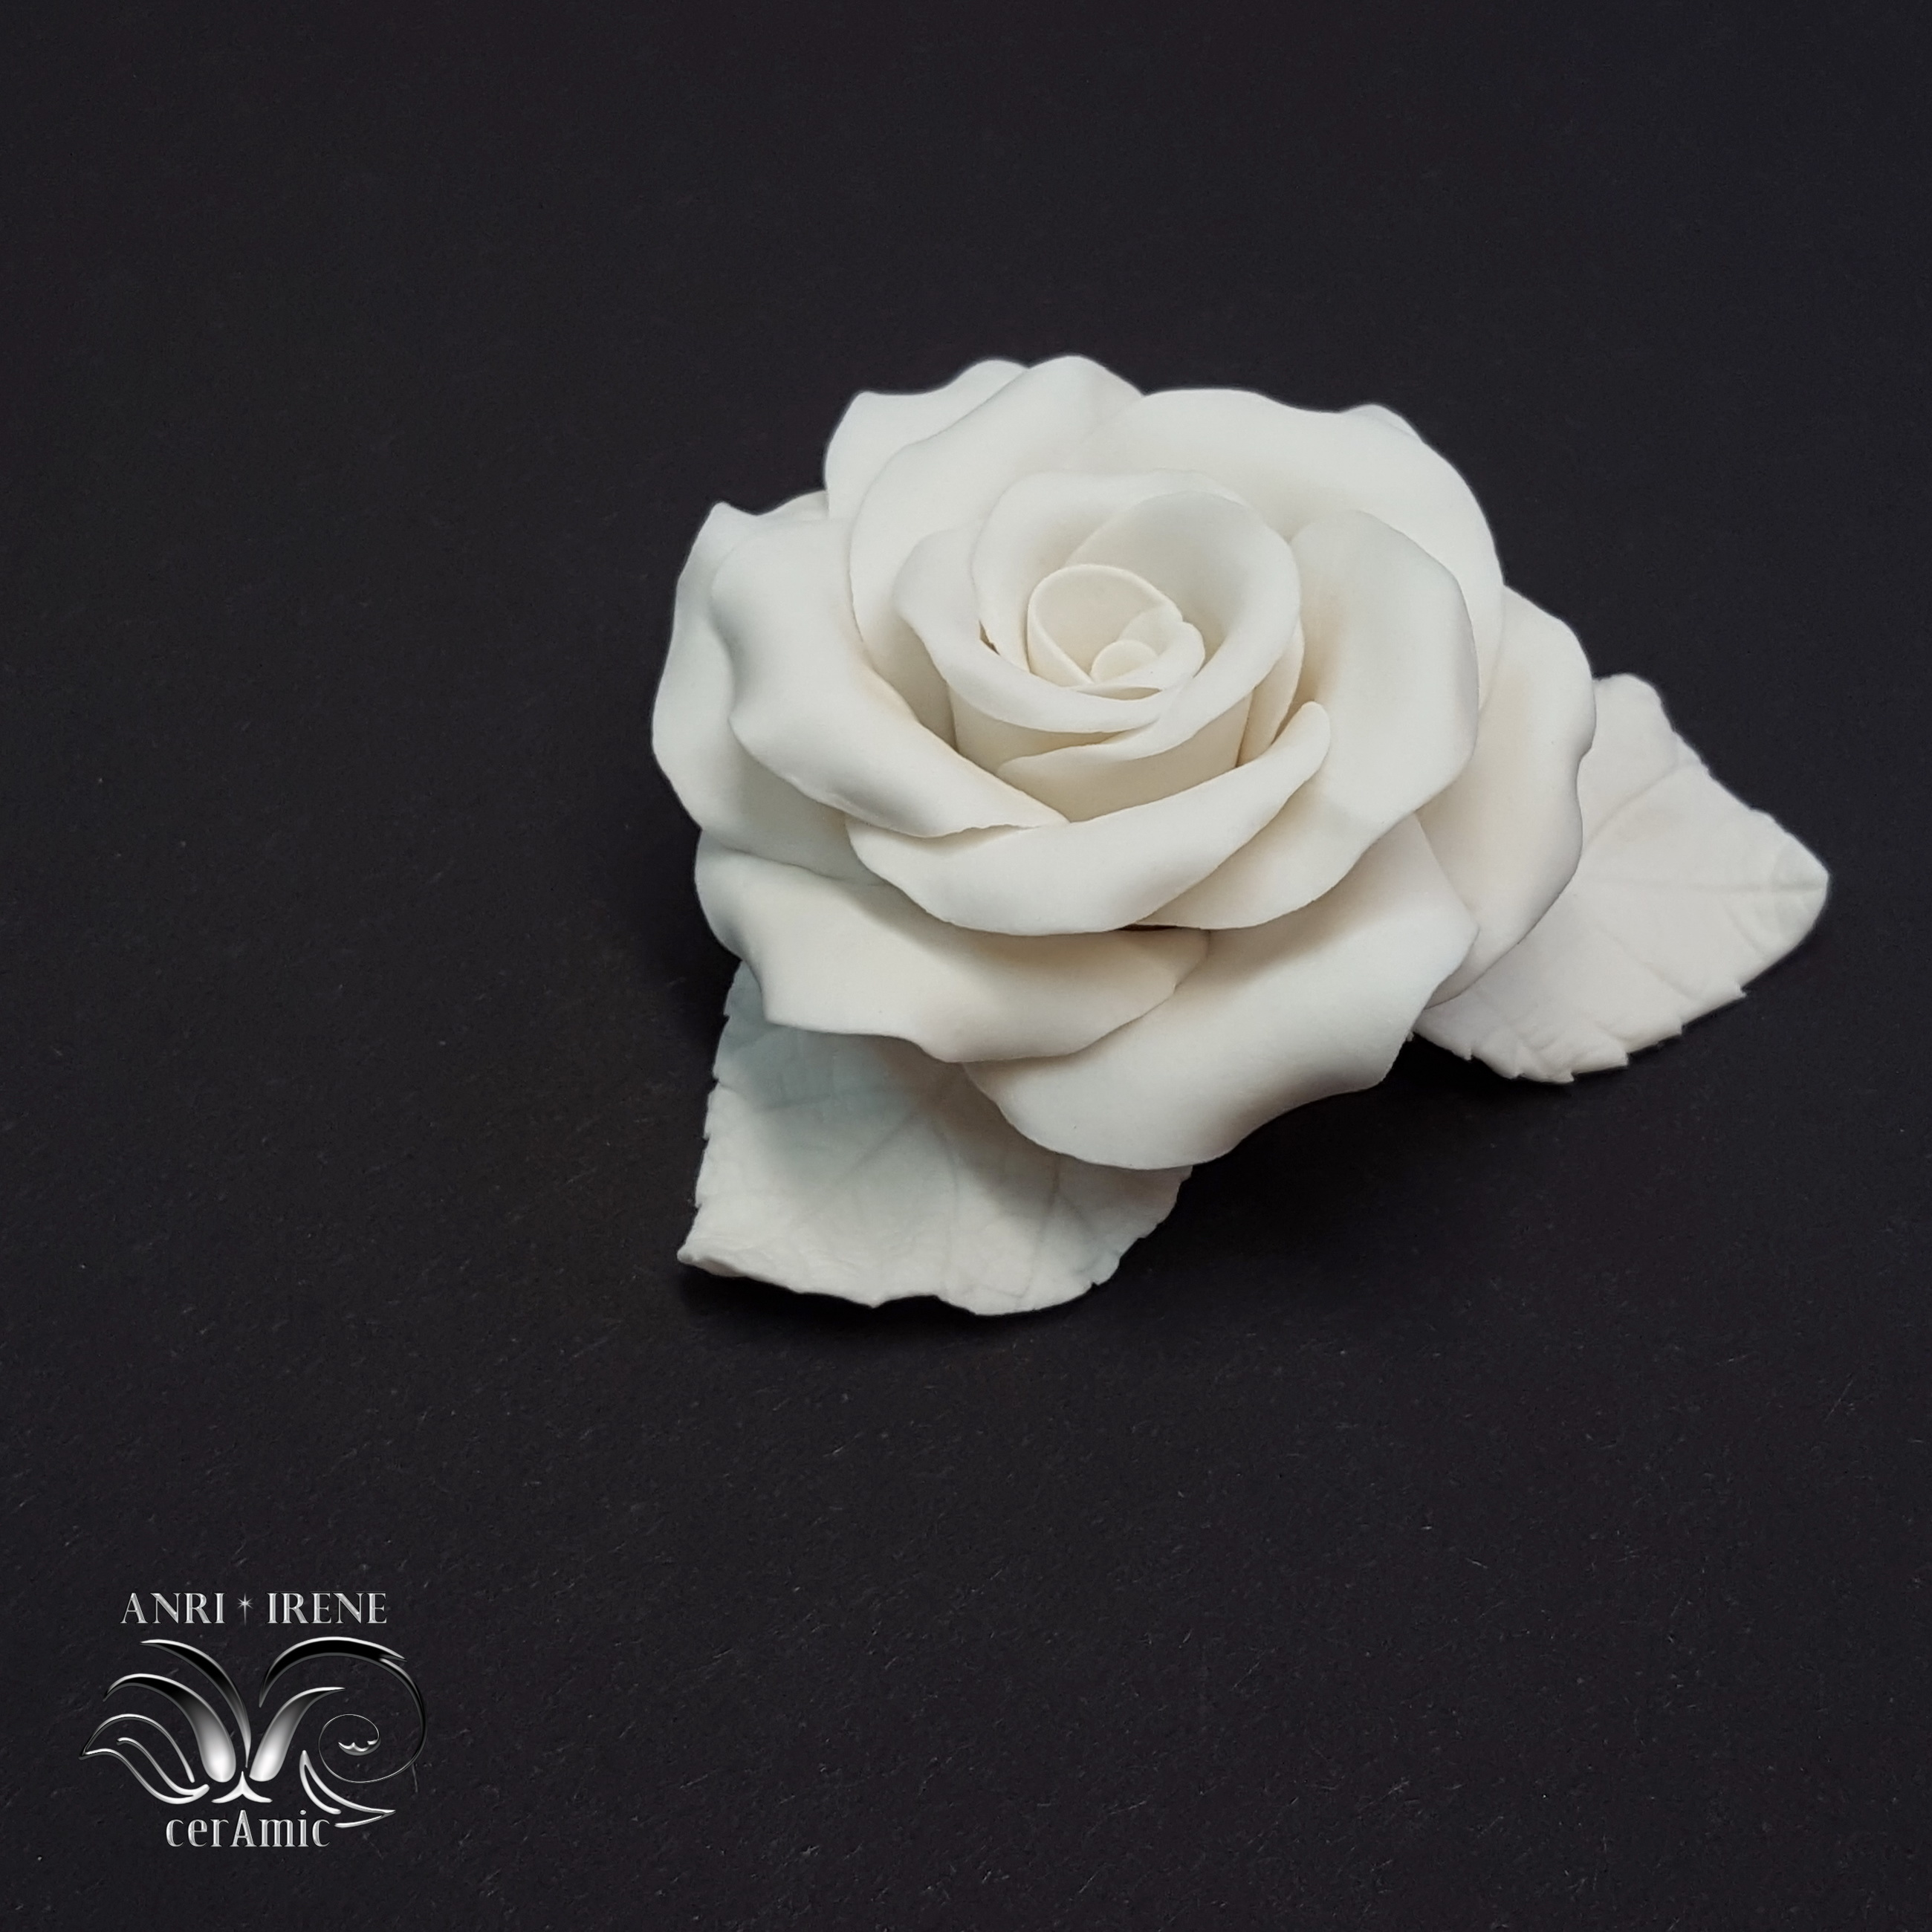 White ceramic rose